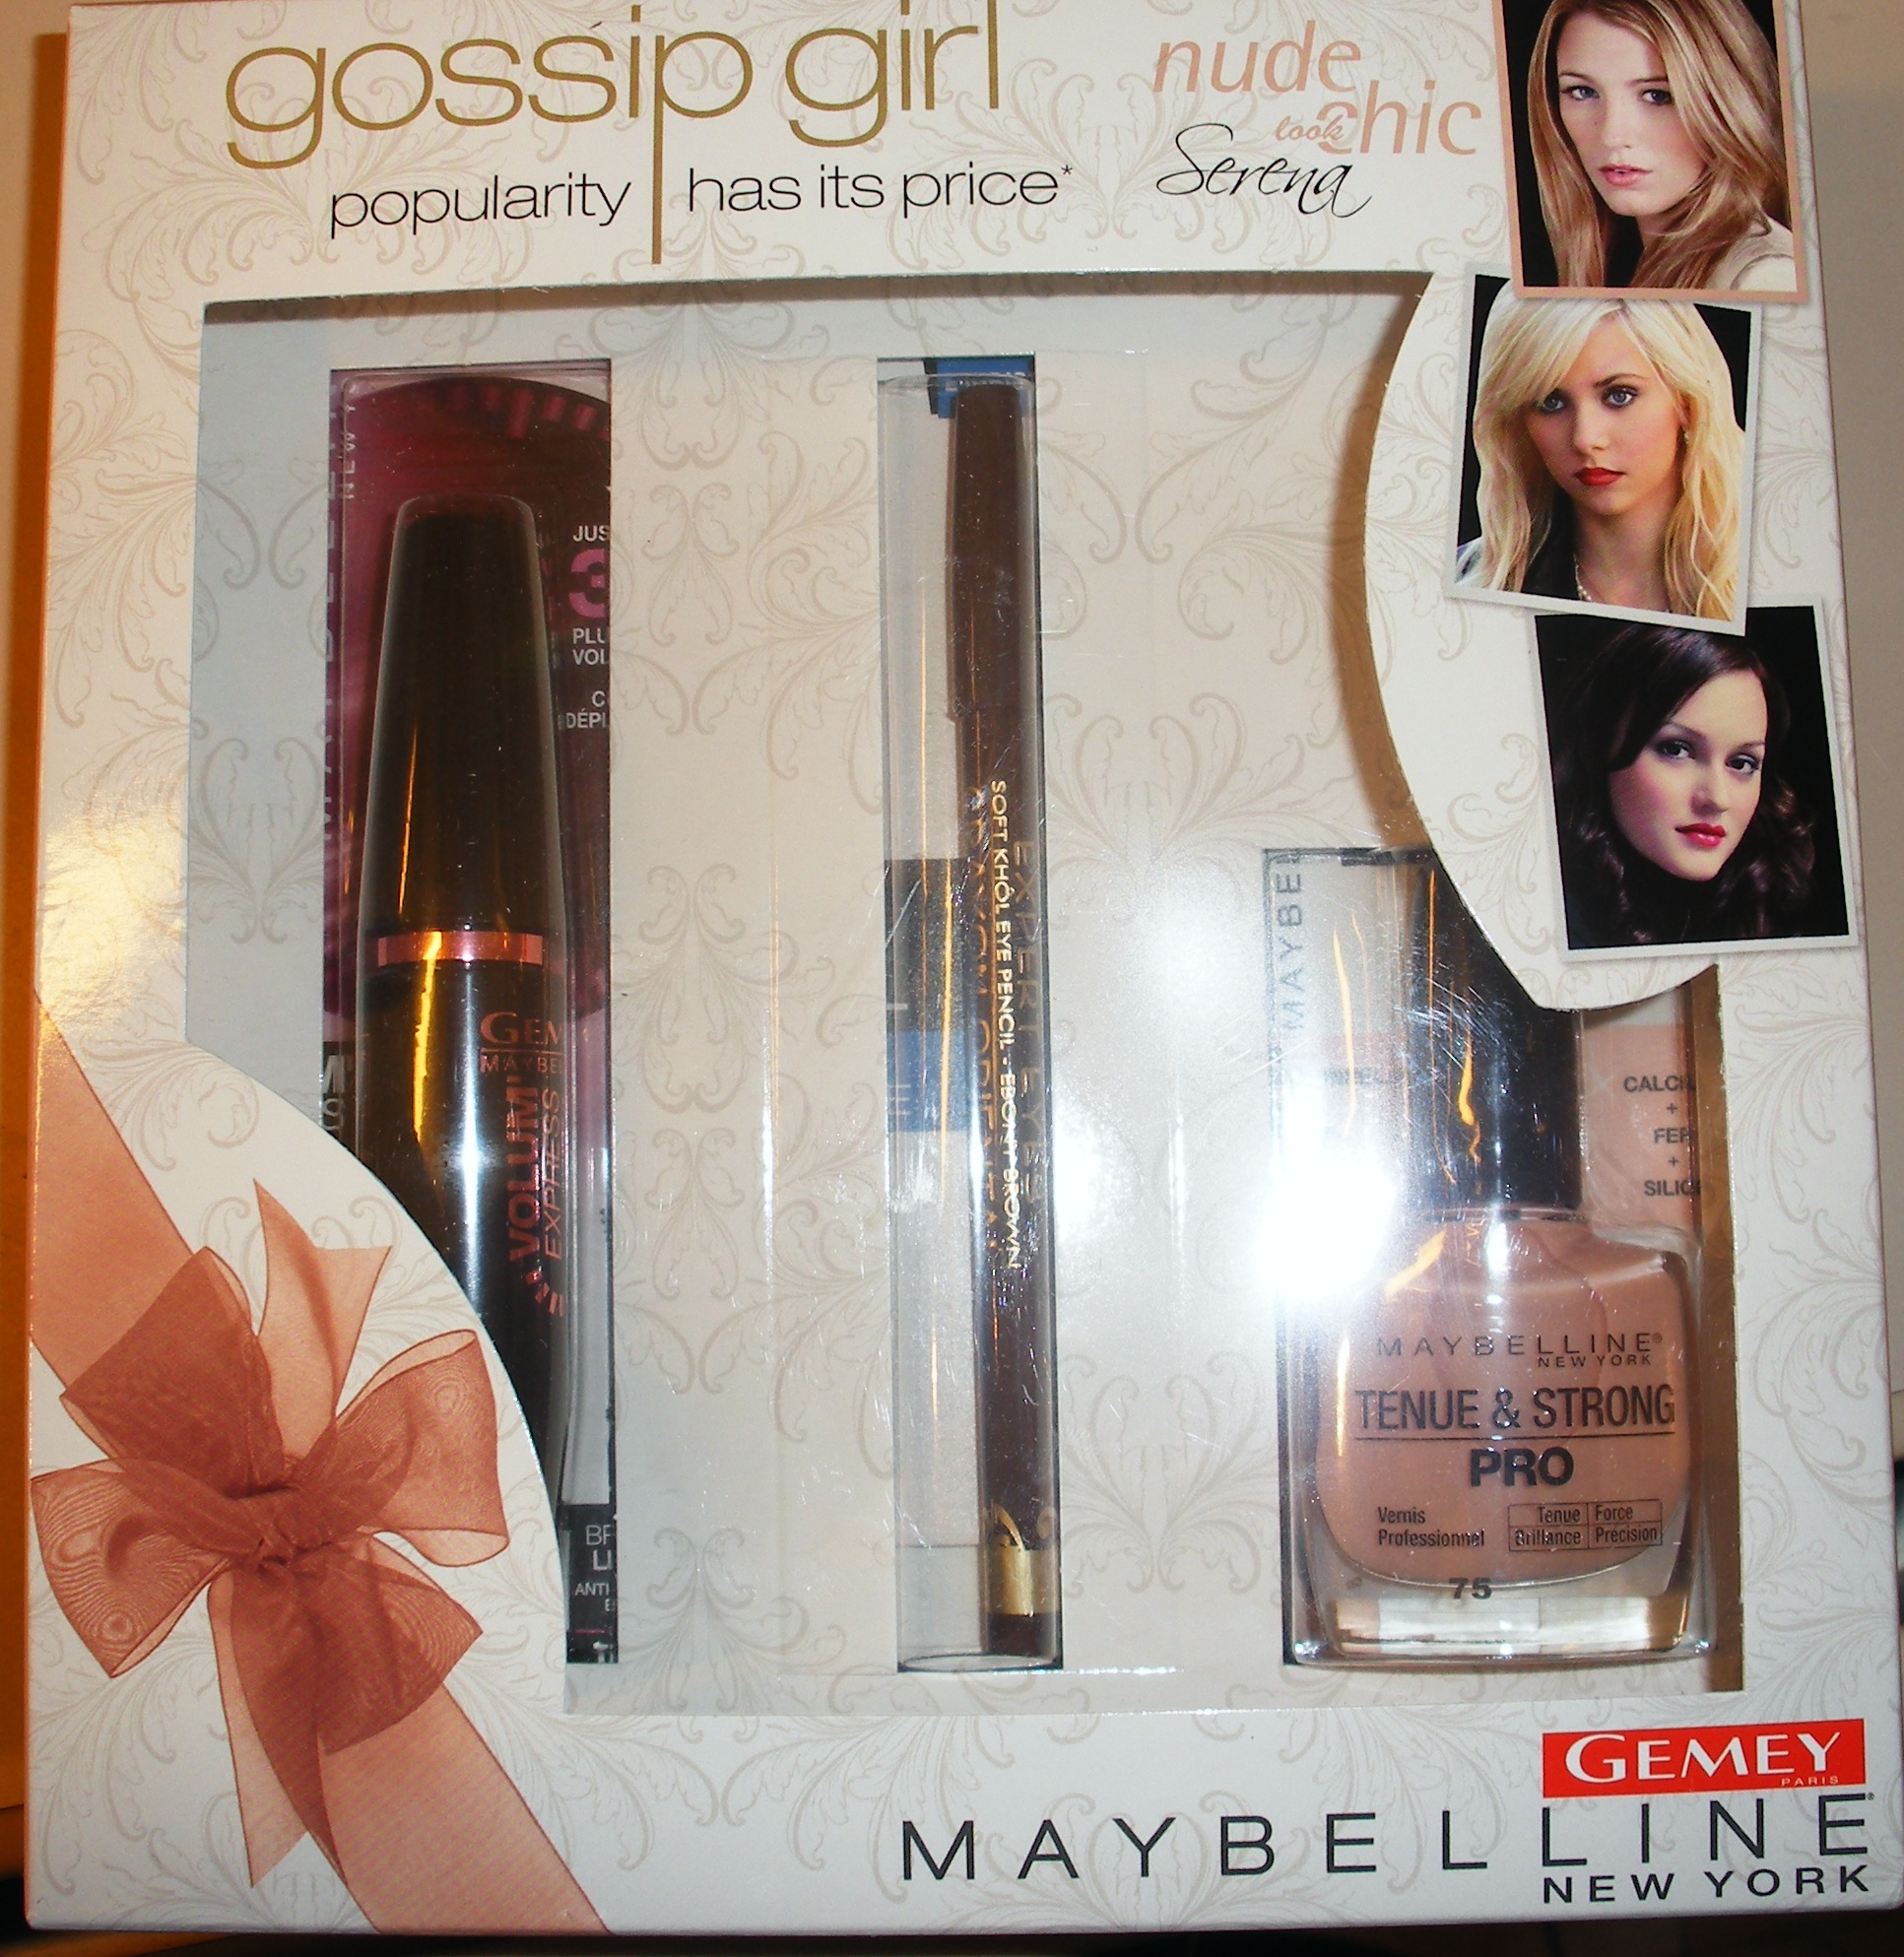 coffret gossip girl gemey maybelline serena wtp. Black Bedroom Furniture Sets. Home Design Ideas